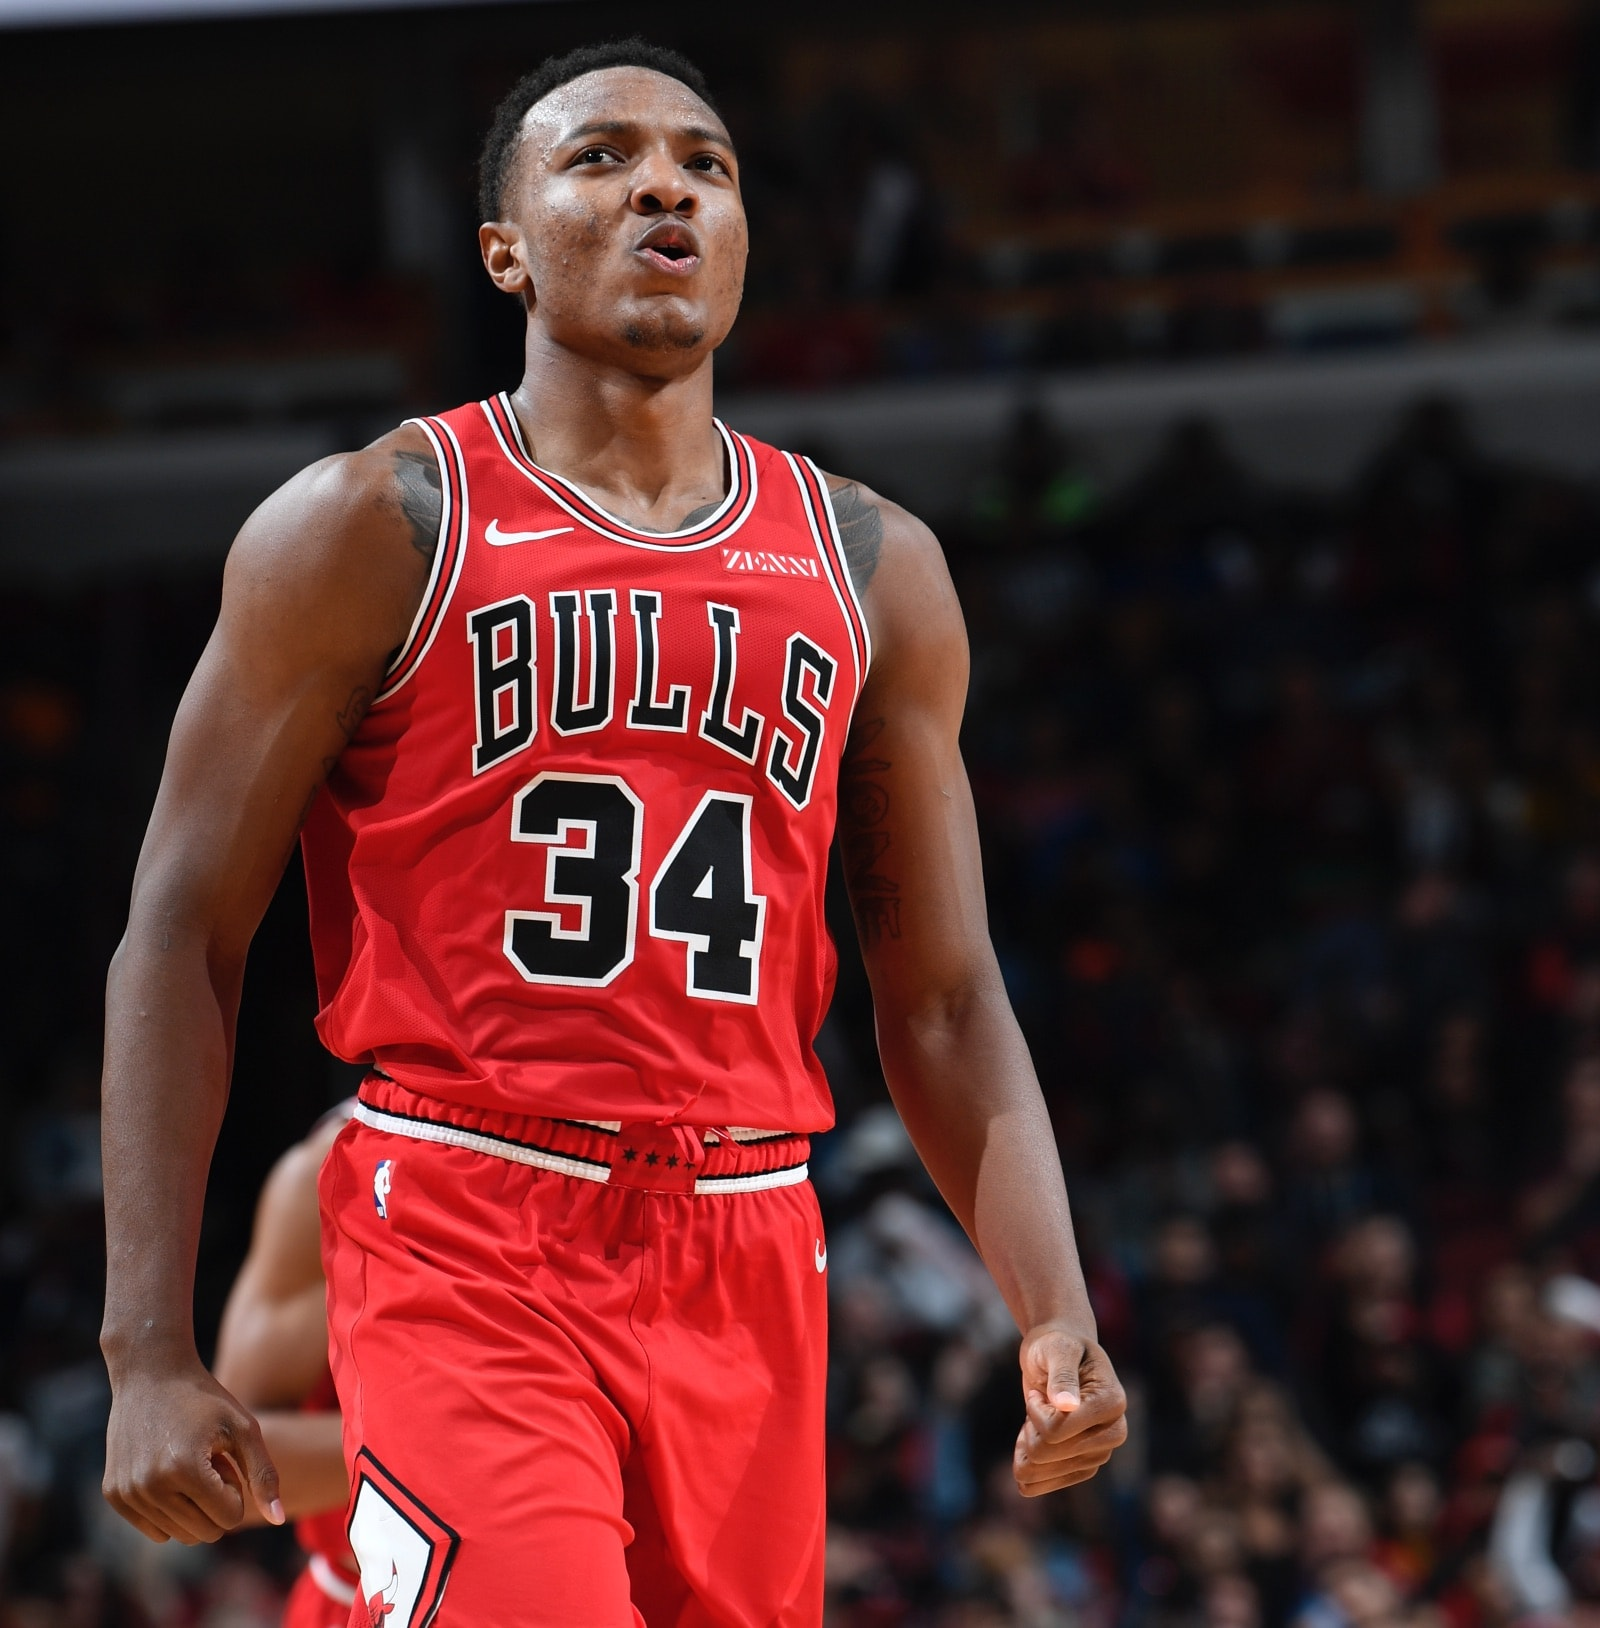 Carter Jr. Shines As Bulls Fall To Nuggets In OT Thriller